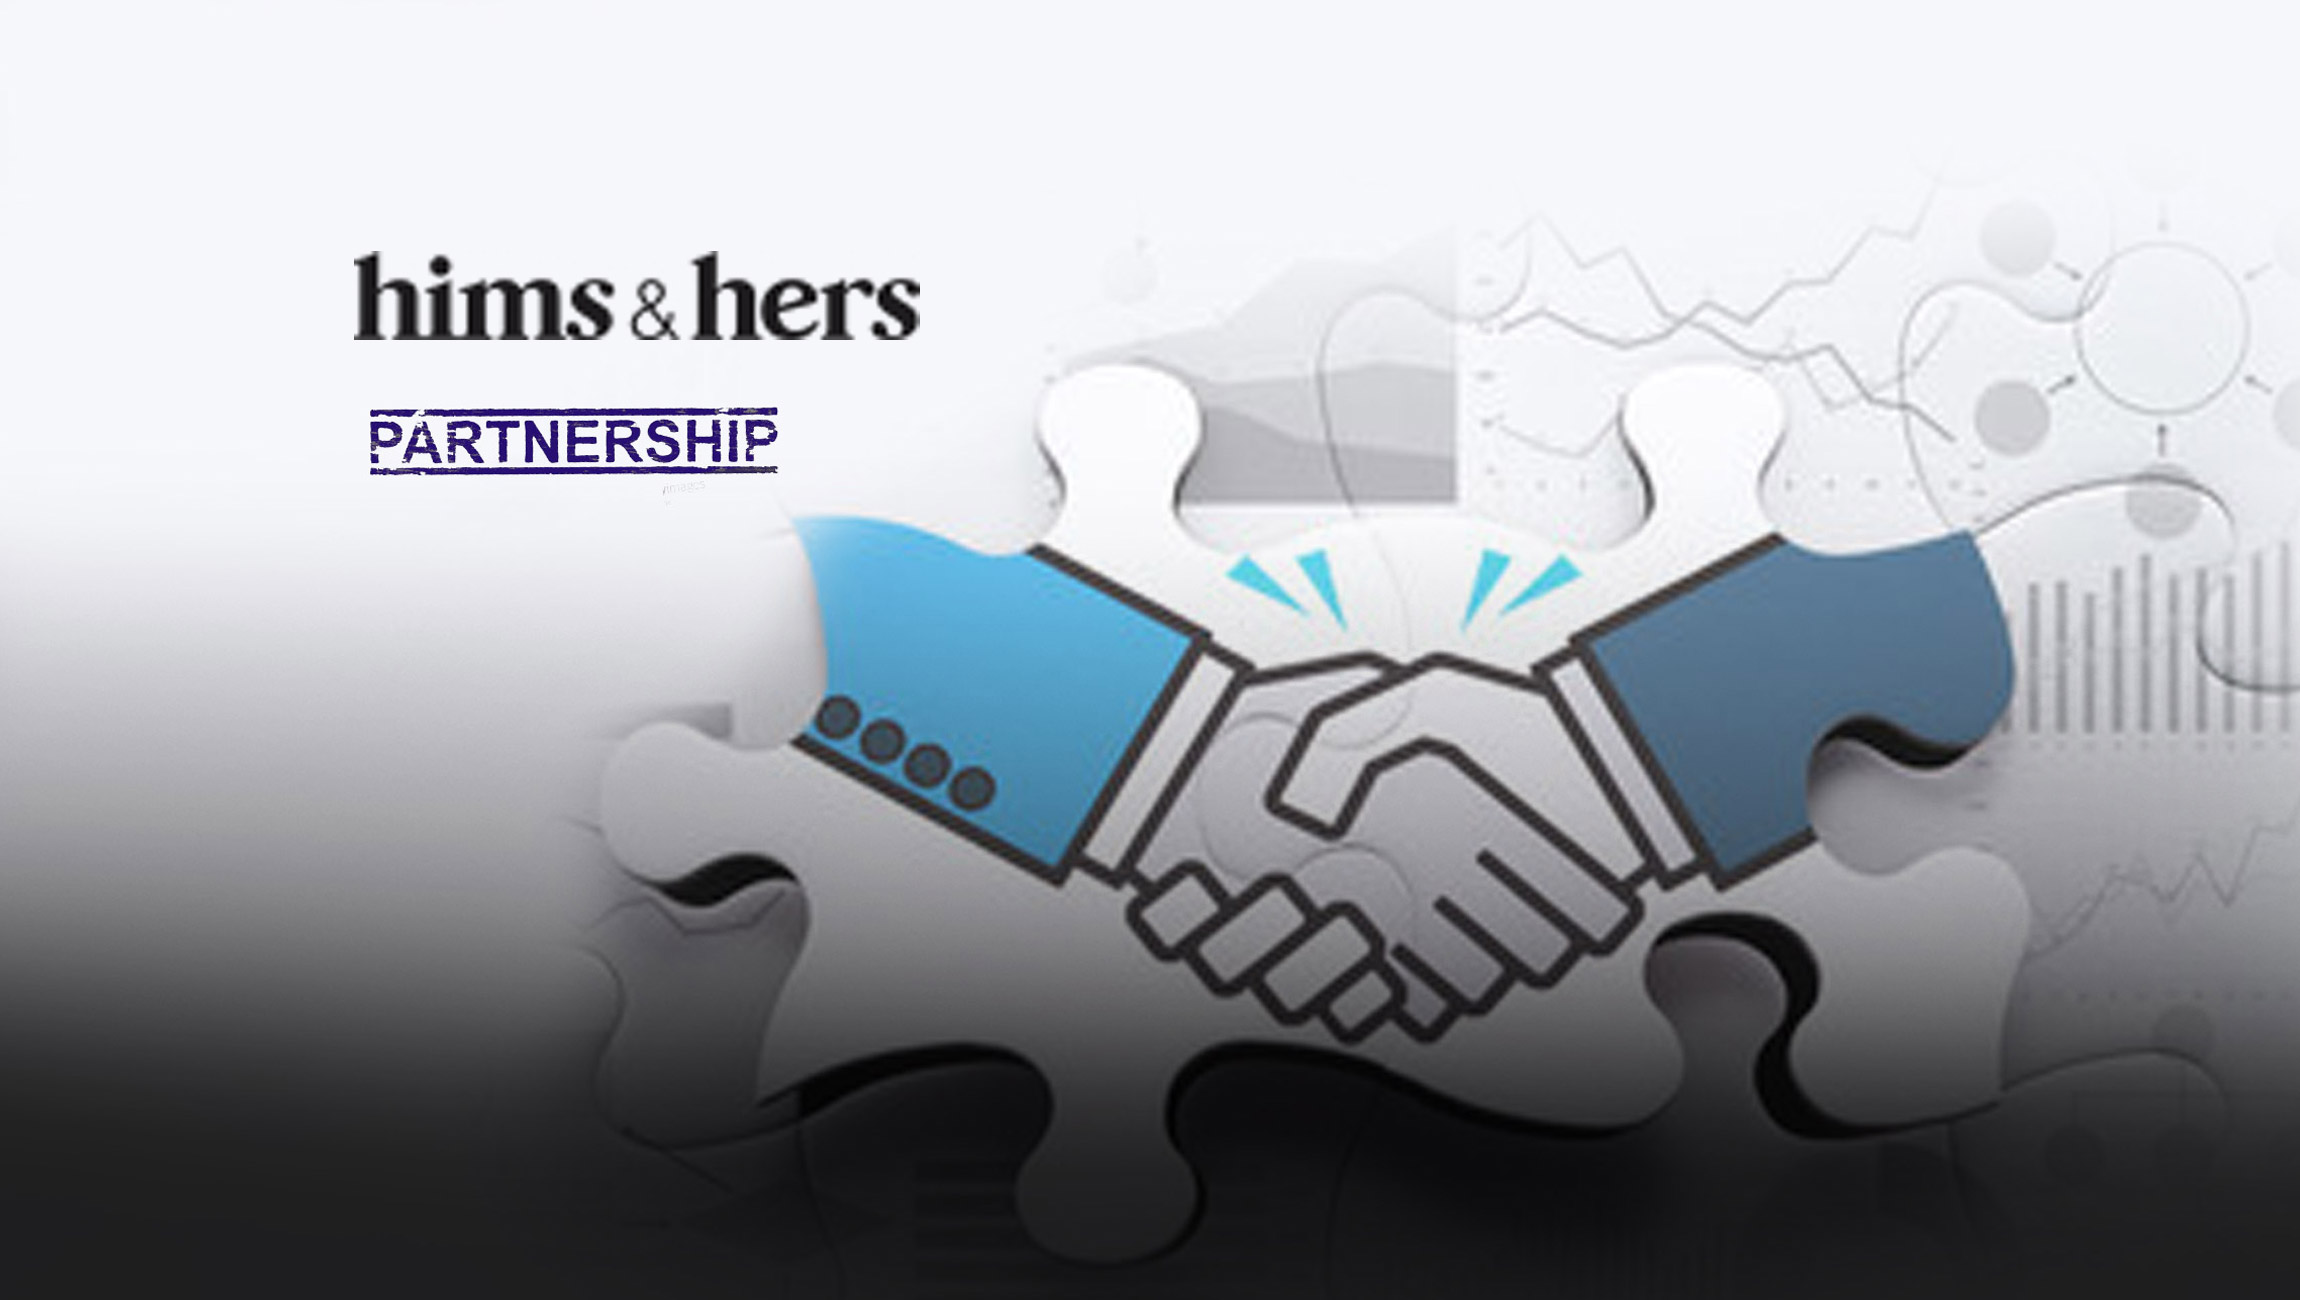 Hims & Hers Partners with REVOLVE to Help More Consumers Access High Quality, Personalized Health and Wellness Solutions